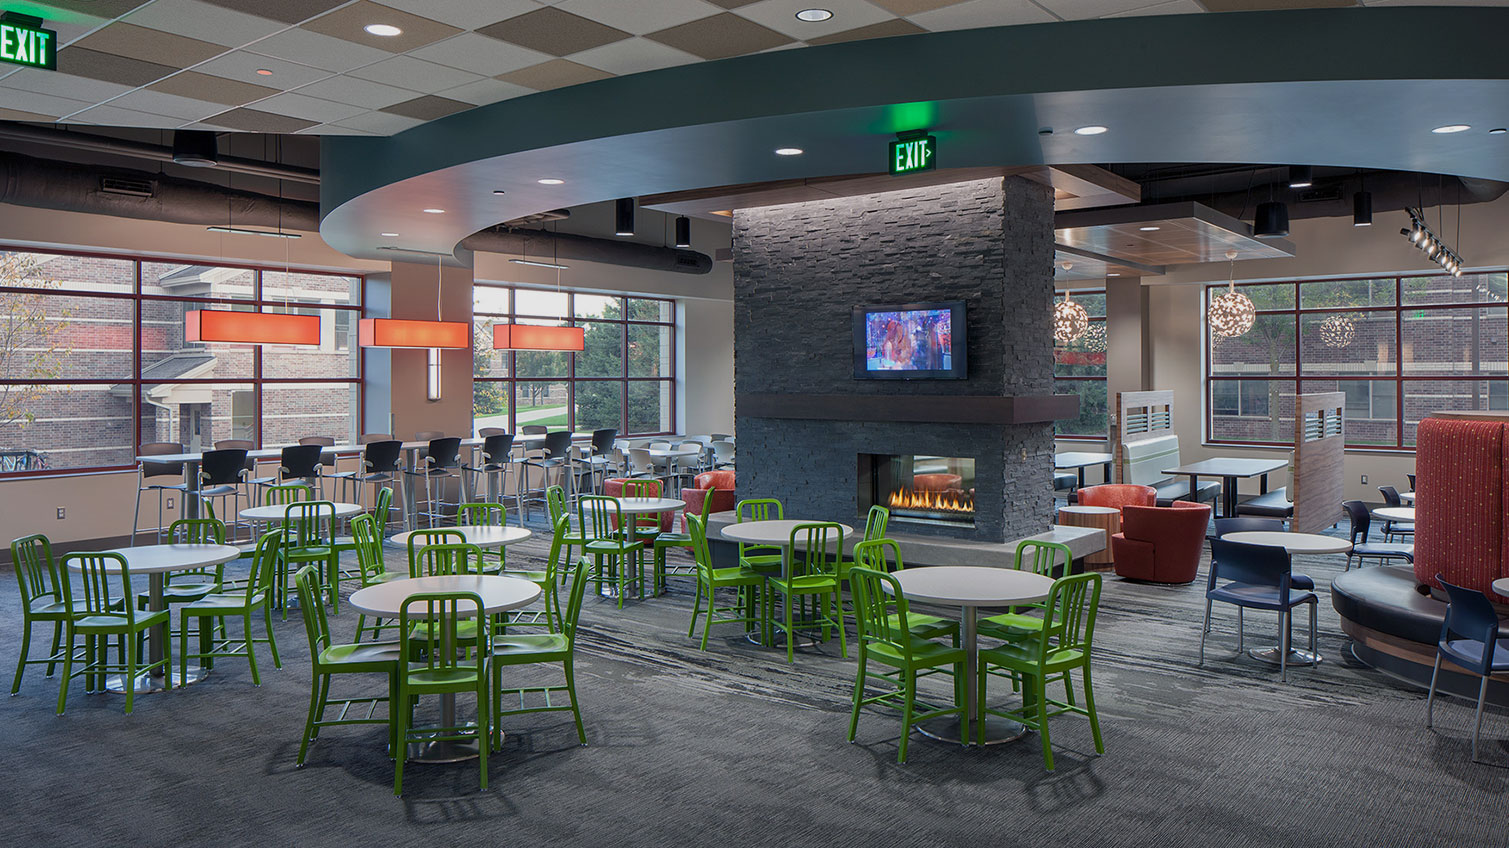 Inside the Grand Valley State University Dining Commons